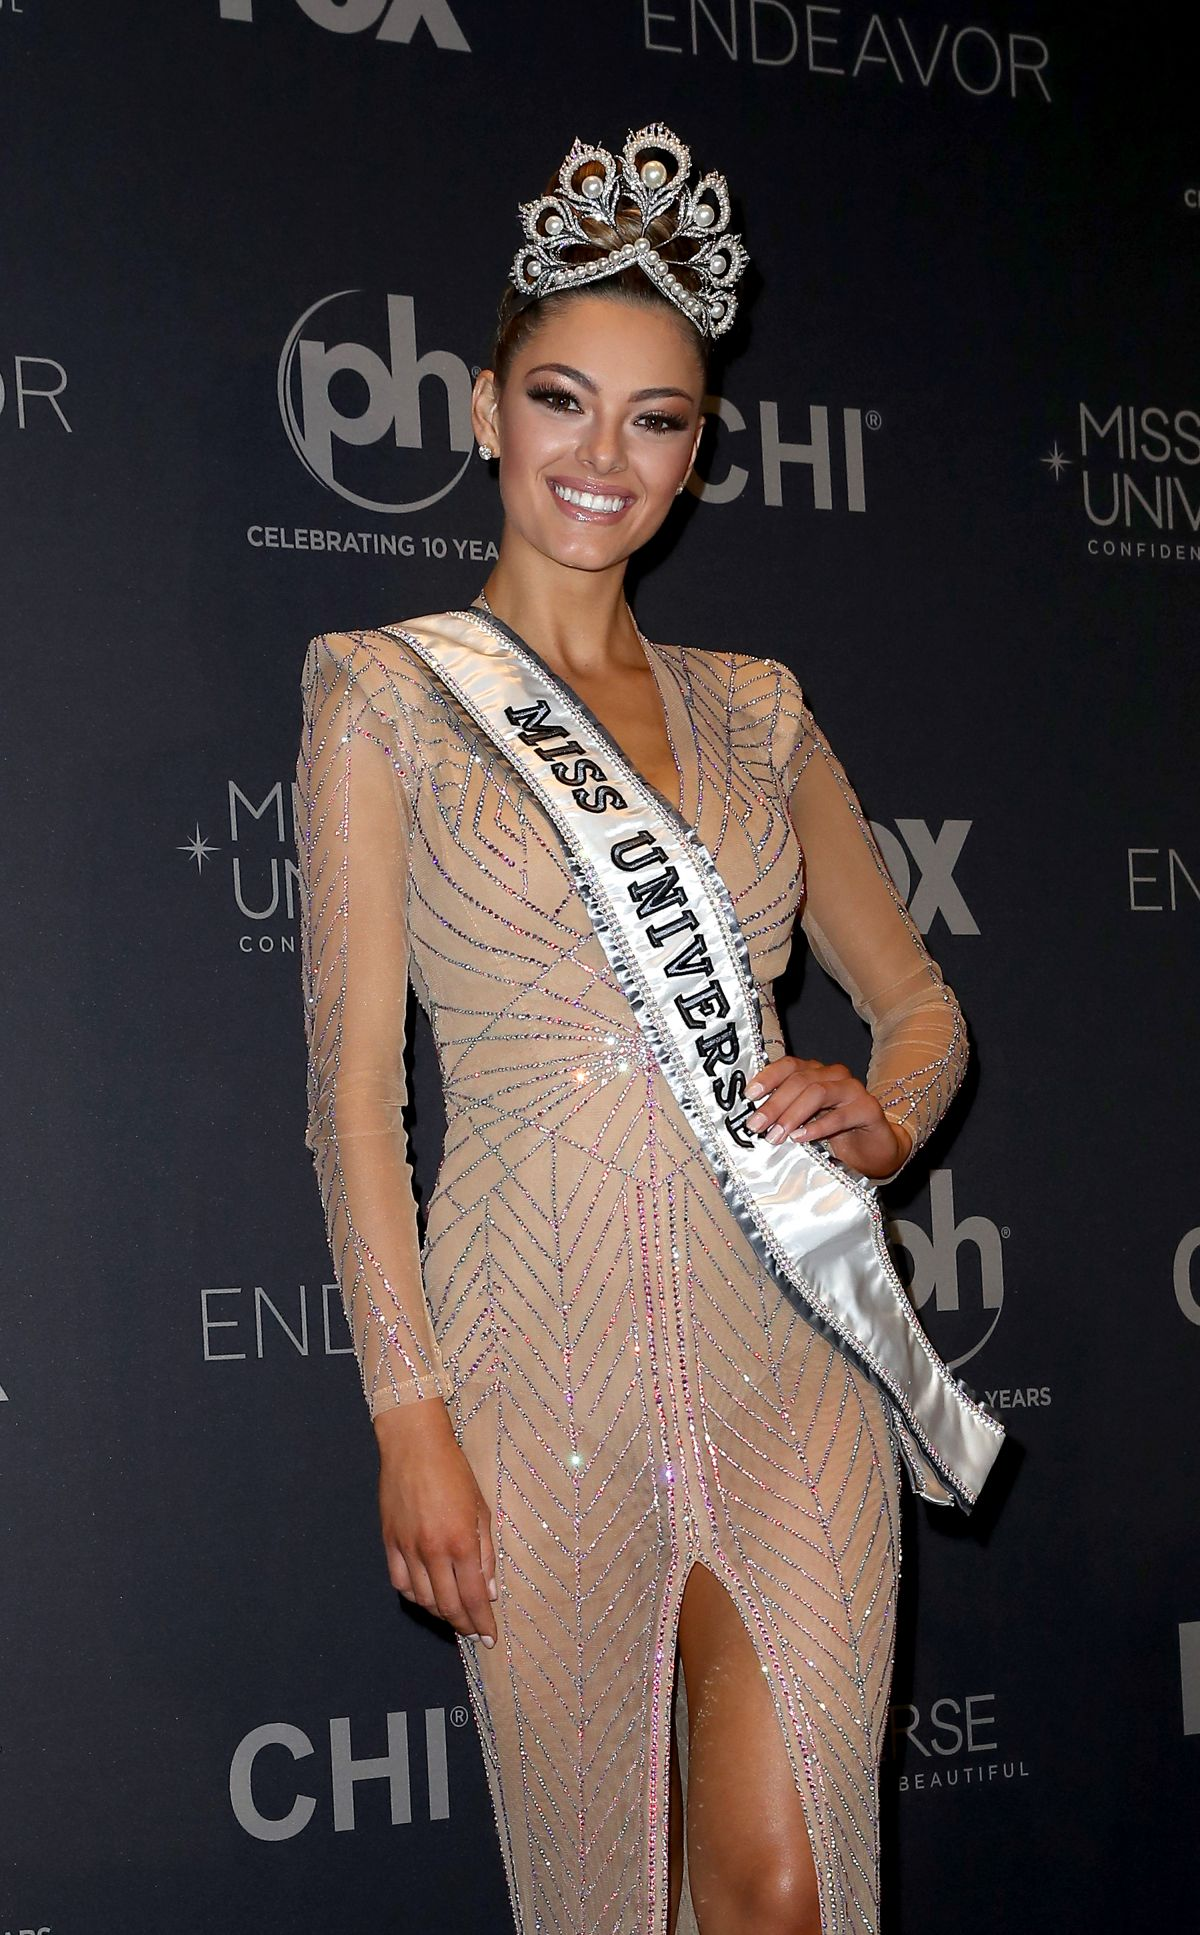 miss universe 2017 how to watch